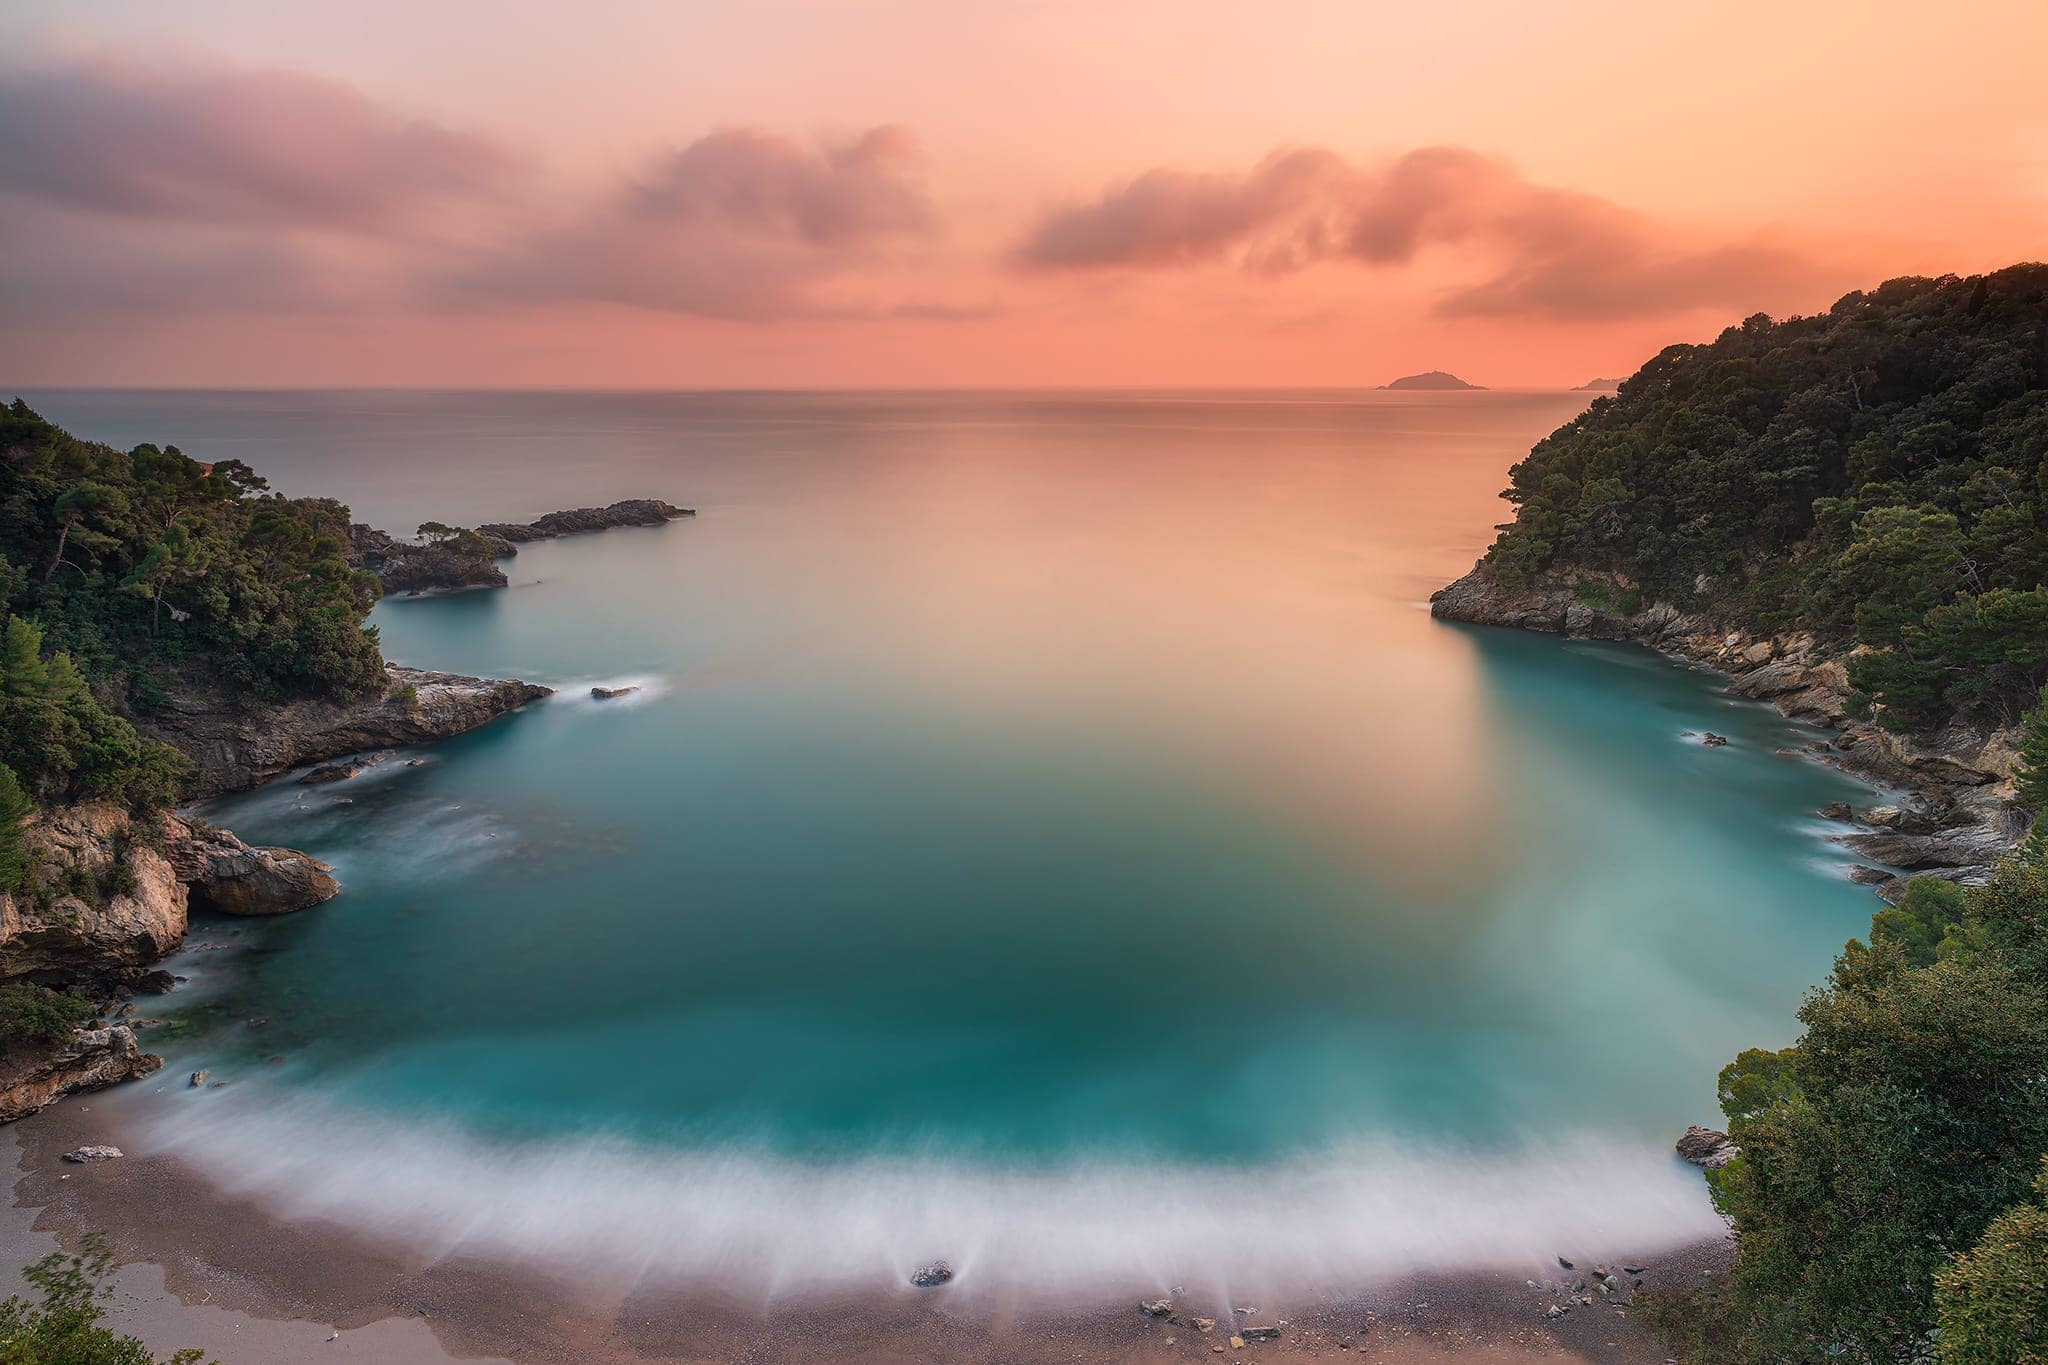 Francesco Gola Italy Italia Lerici Tellaro Eco Mare Fiascherino Long Exposure Seascape Sunset Tramonto R3